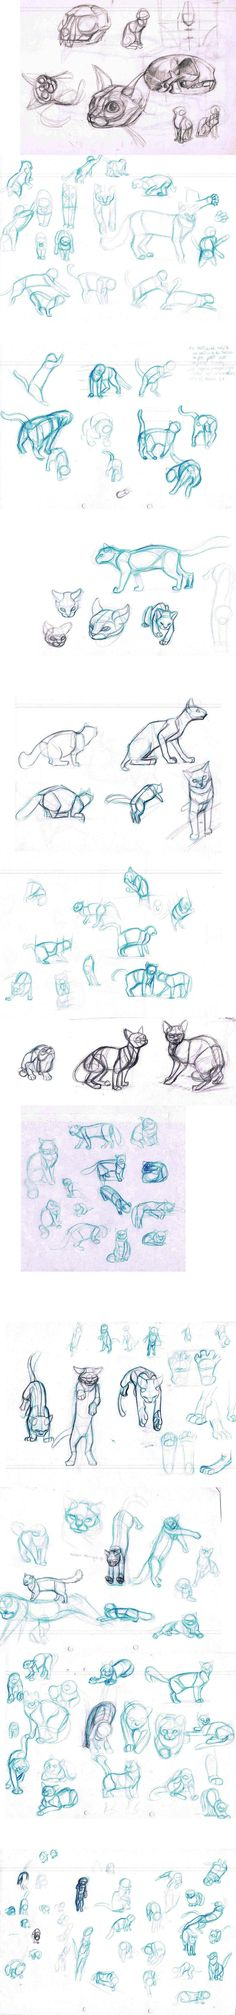 cat sketches by sofmer.deviantart.com on @deviantART